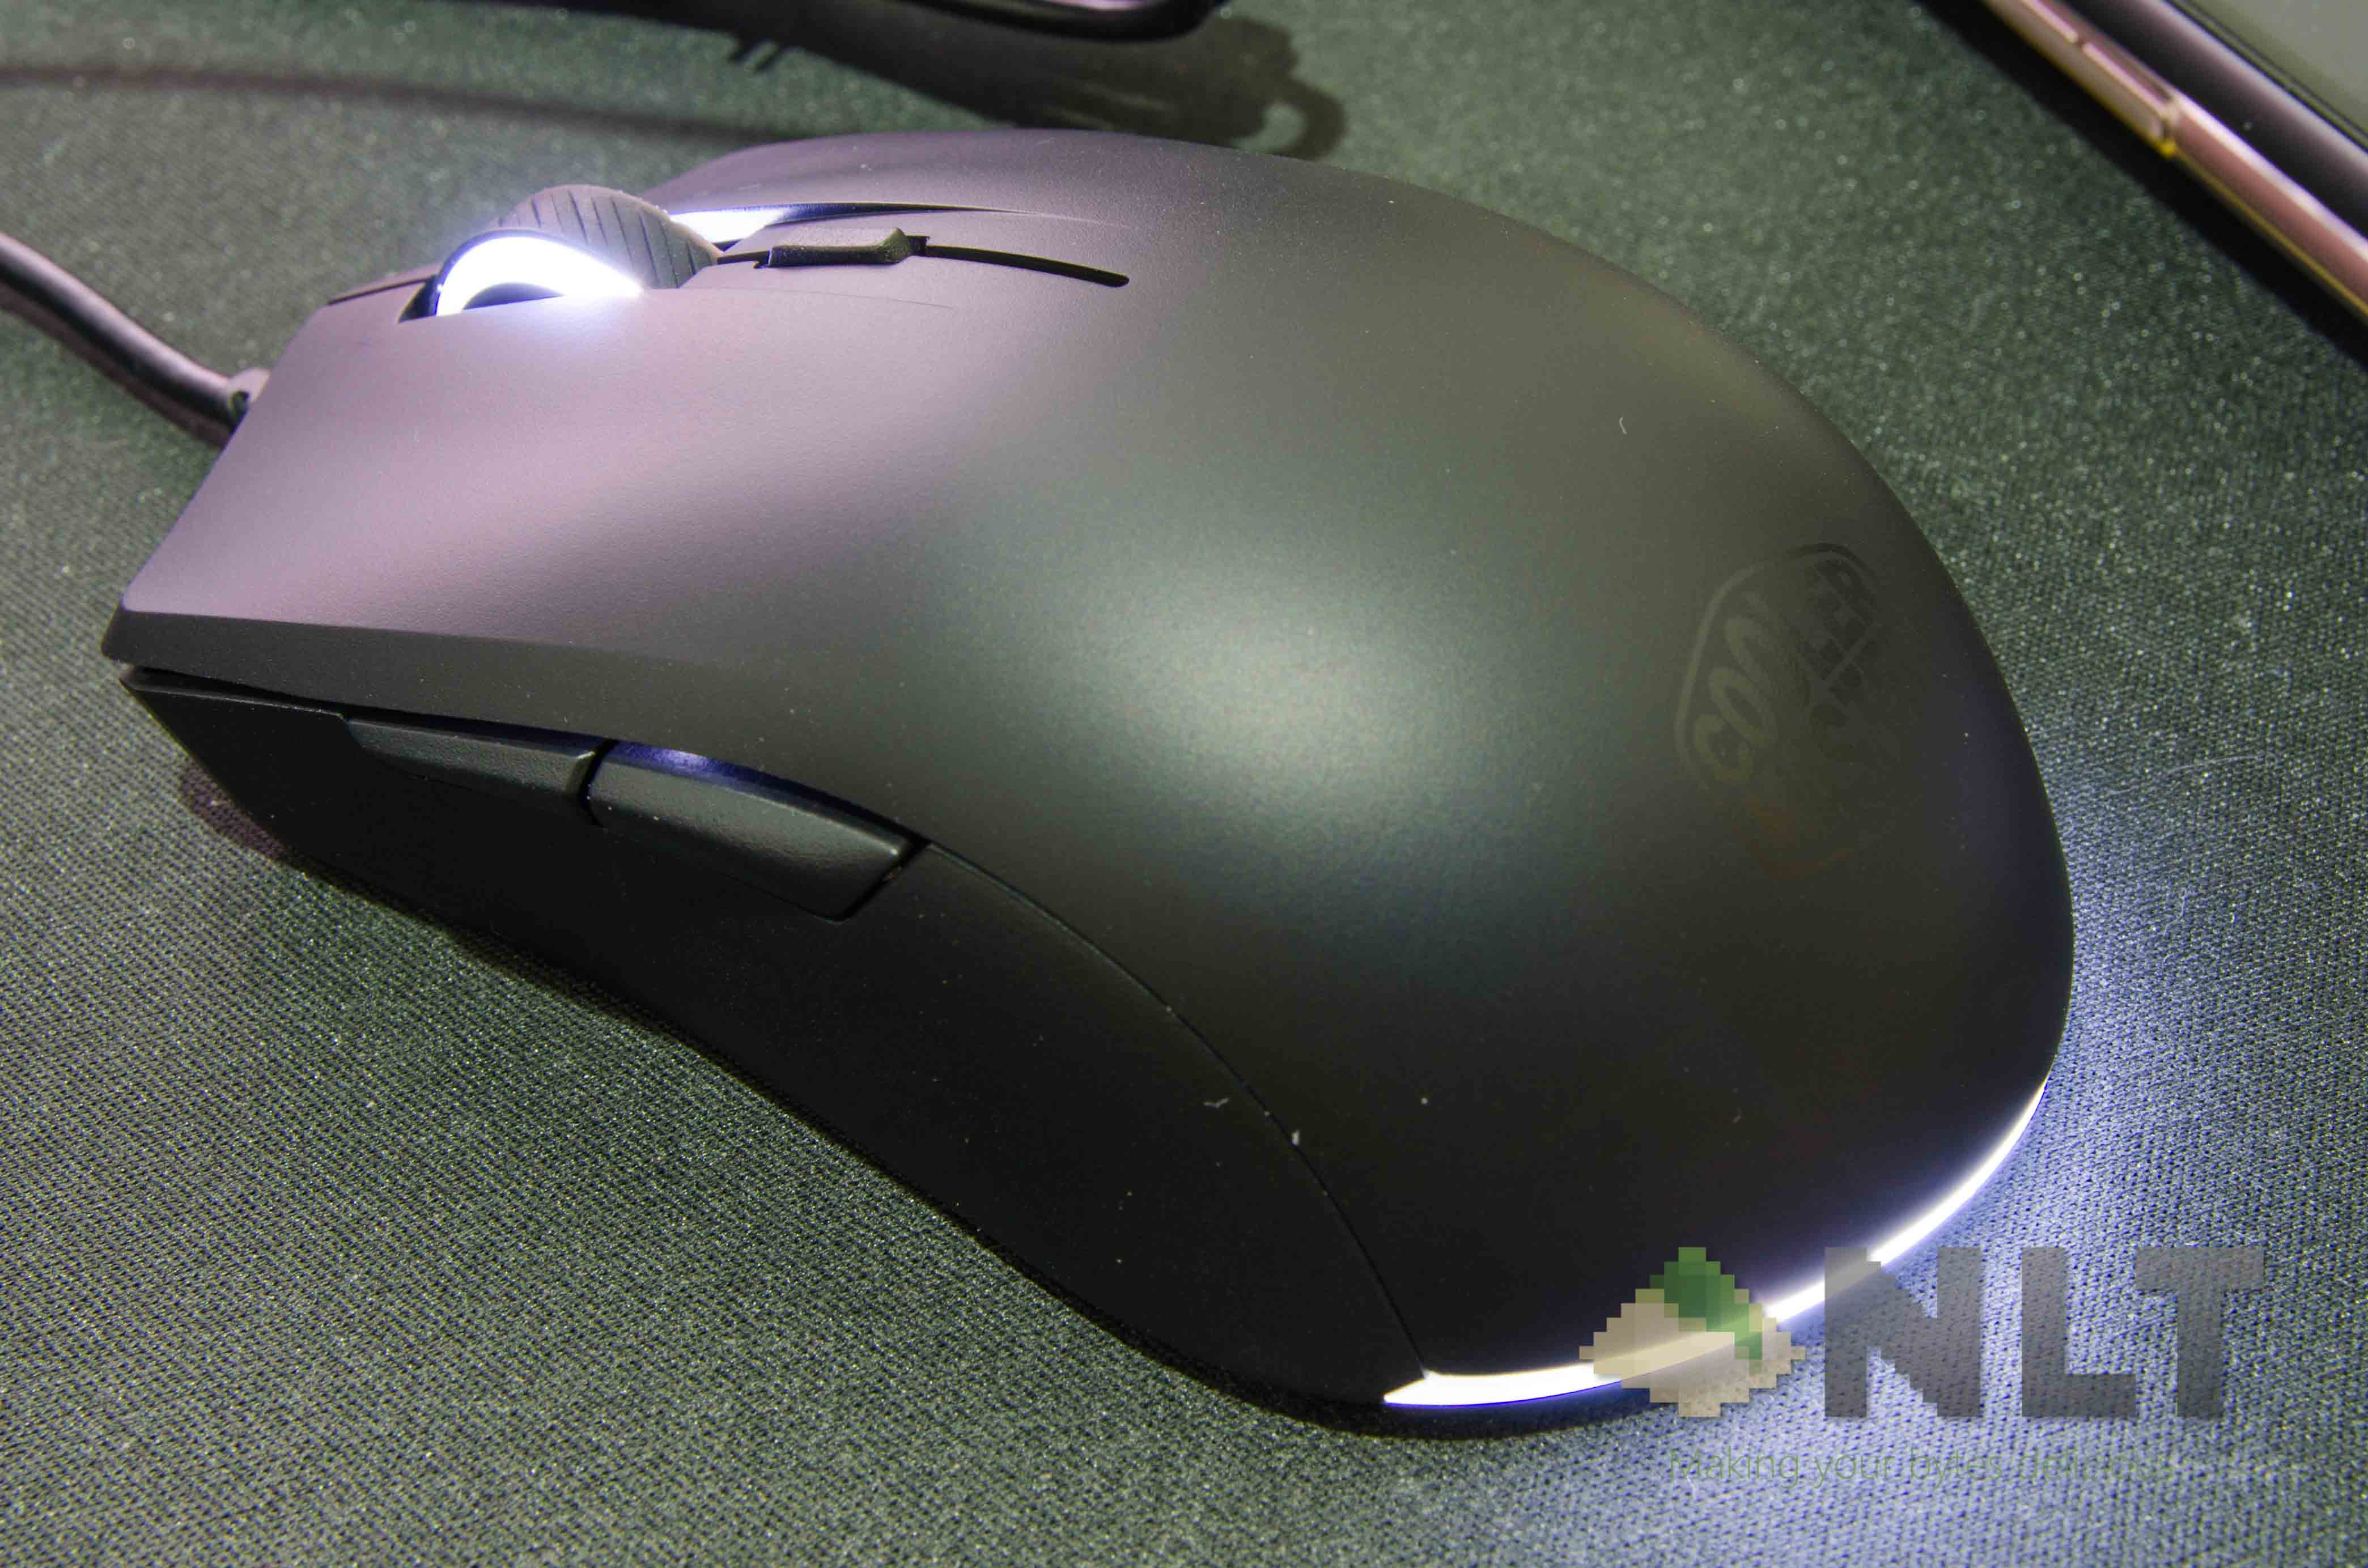 Review - MasterMouse Lite S by Cooler Master: Form Over